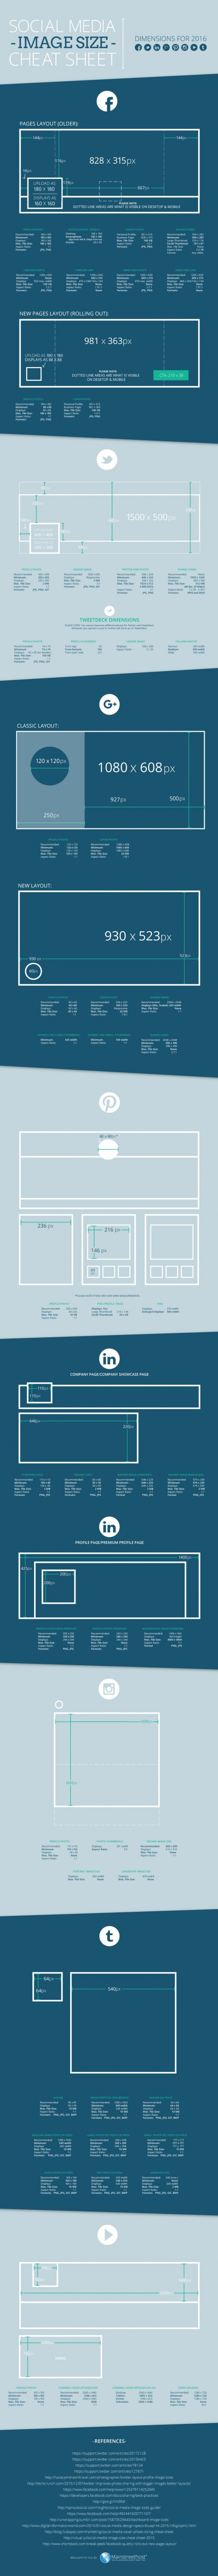 infografia social-cheat-sheet-infographic